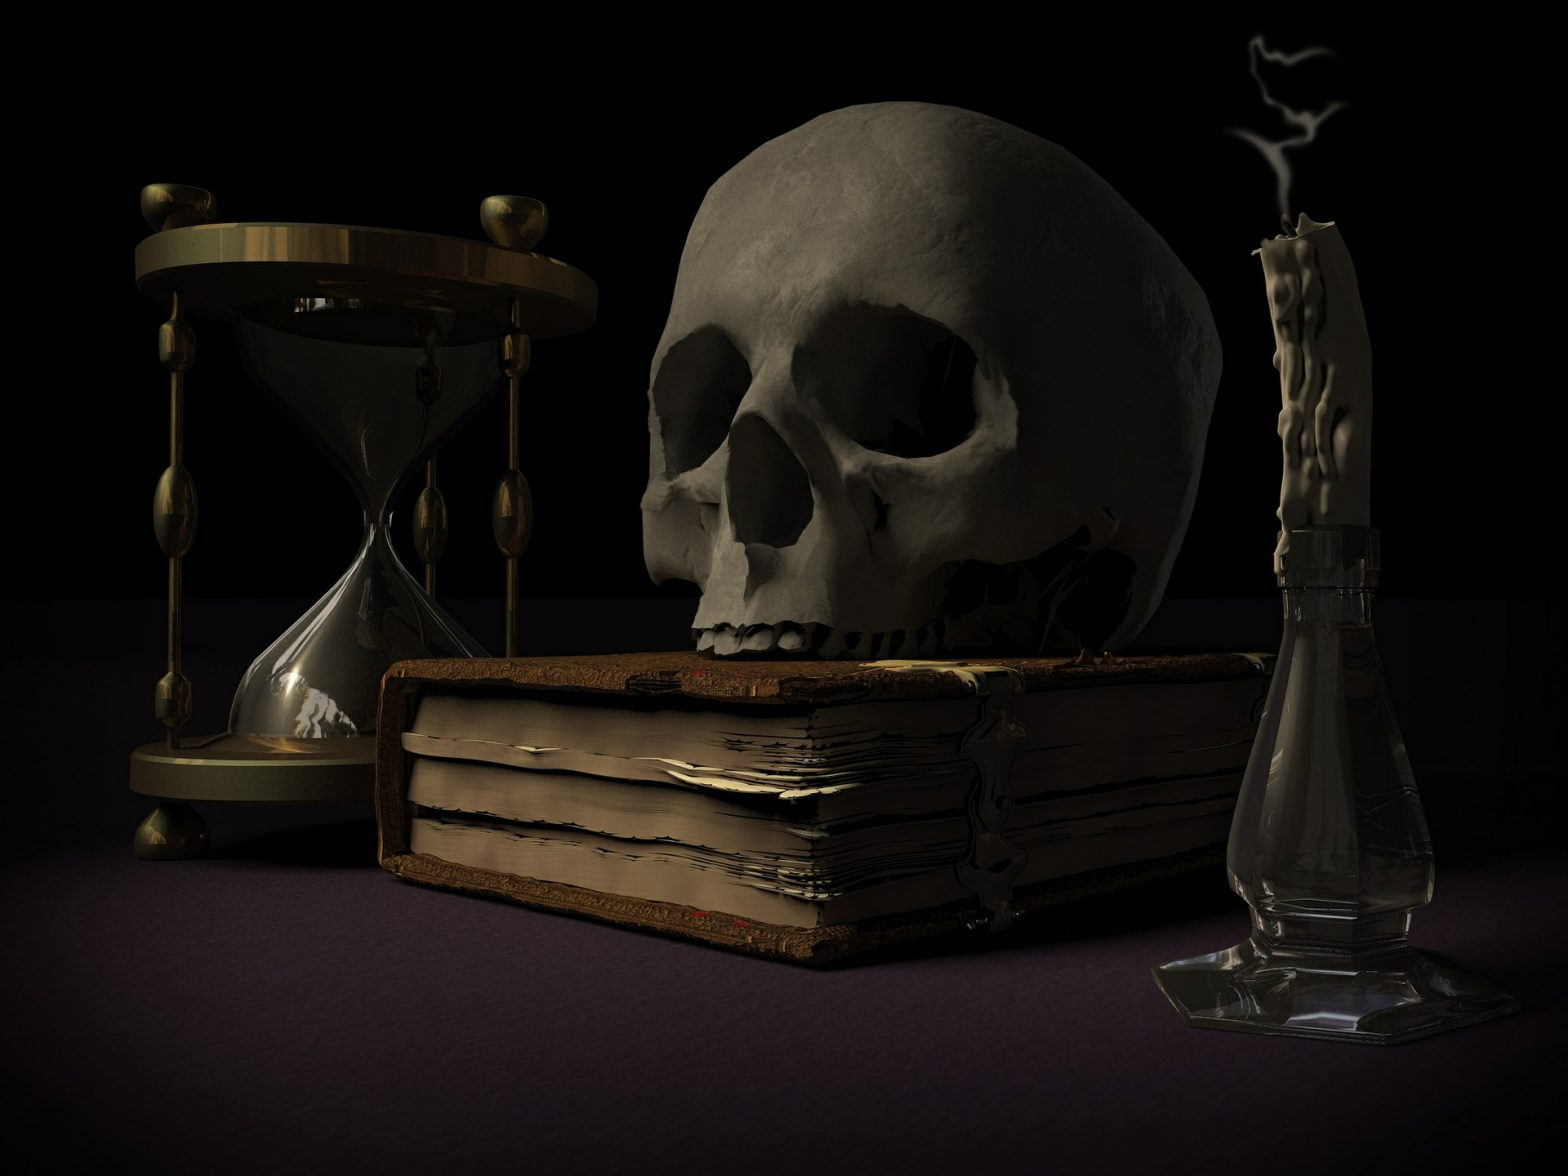 Memento Mori | Remember That You Must Die | Stoicism